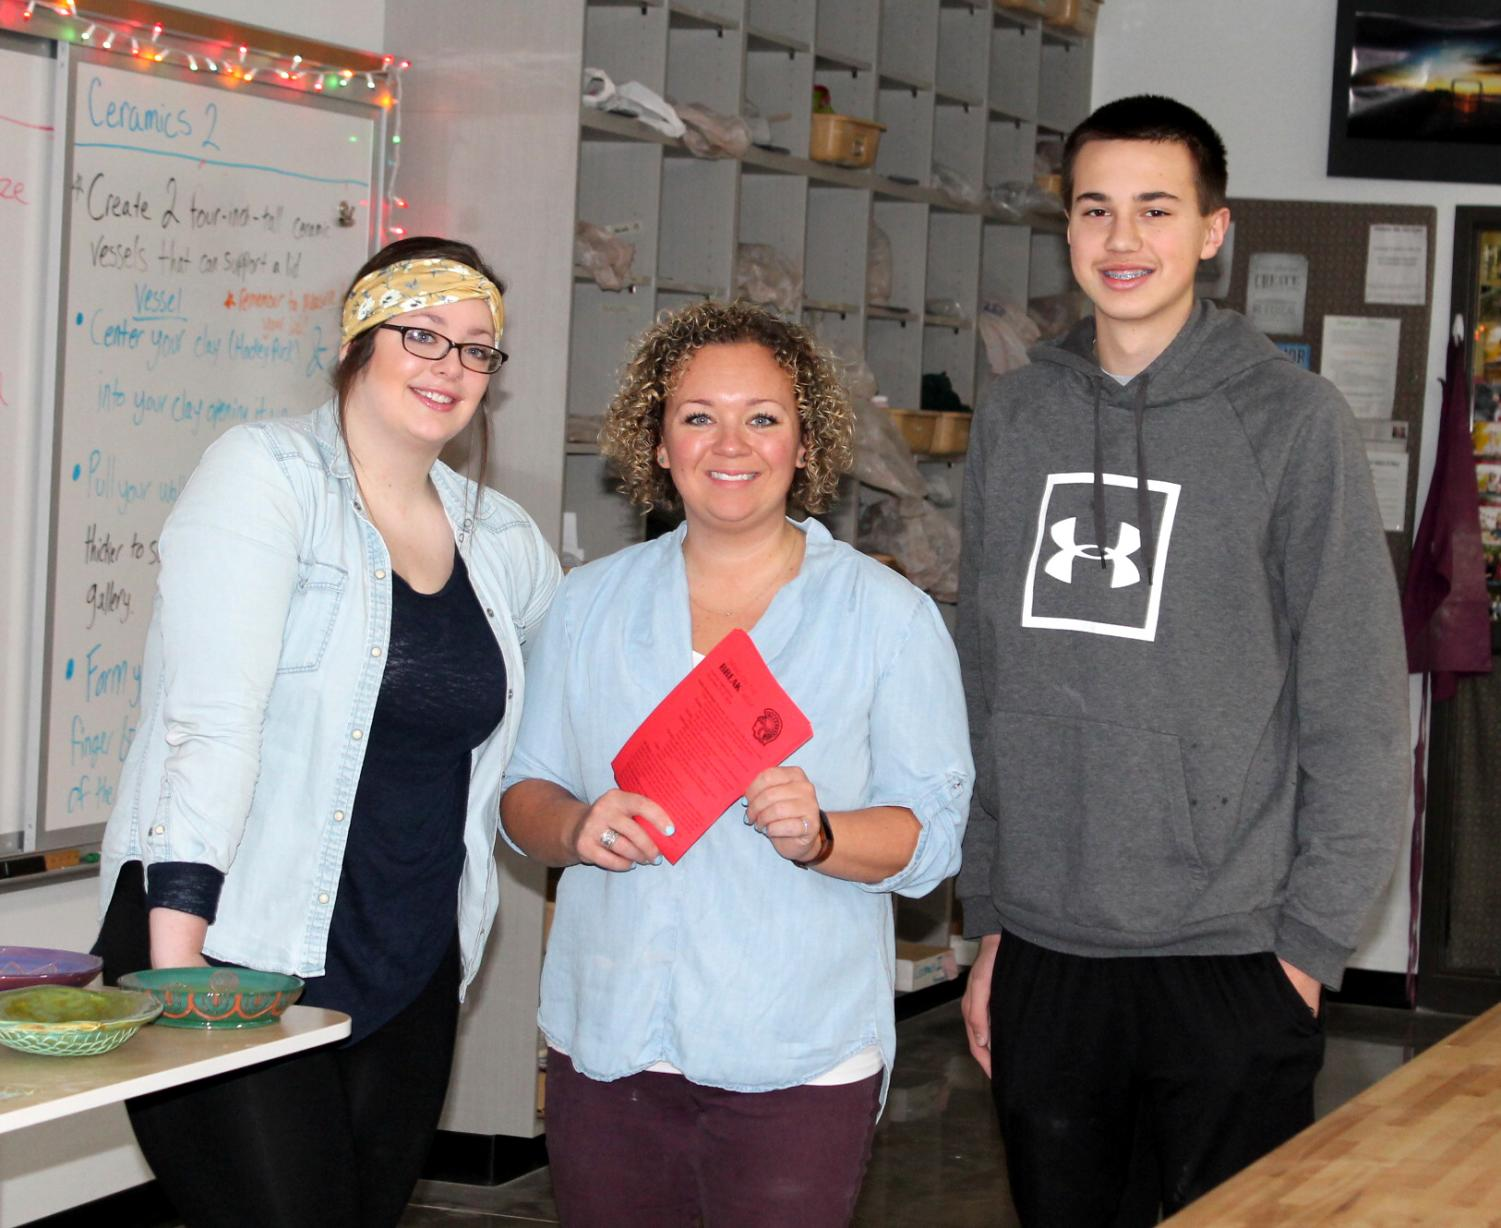 Sophomore Student Council representative Mara McGillis, stands with Student Council advisor, Nikkee Francisco and sophomore Isaac Domitrovich in the Ceramics room on Dec 12. McGillis and Domitrovich along with Francisco are working on putting on Bring on the Break which will be held the week of Dec 21.